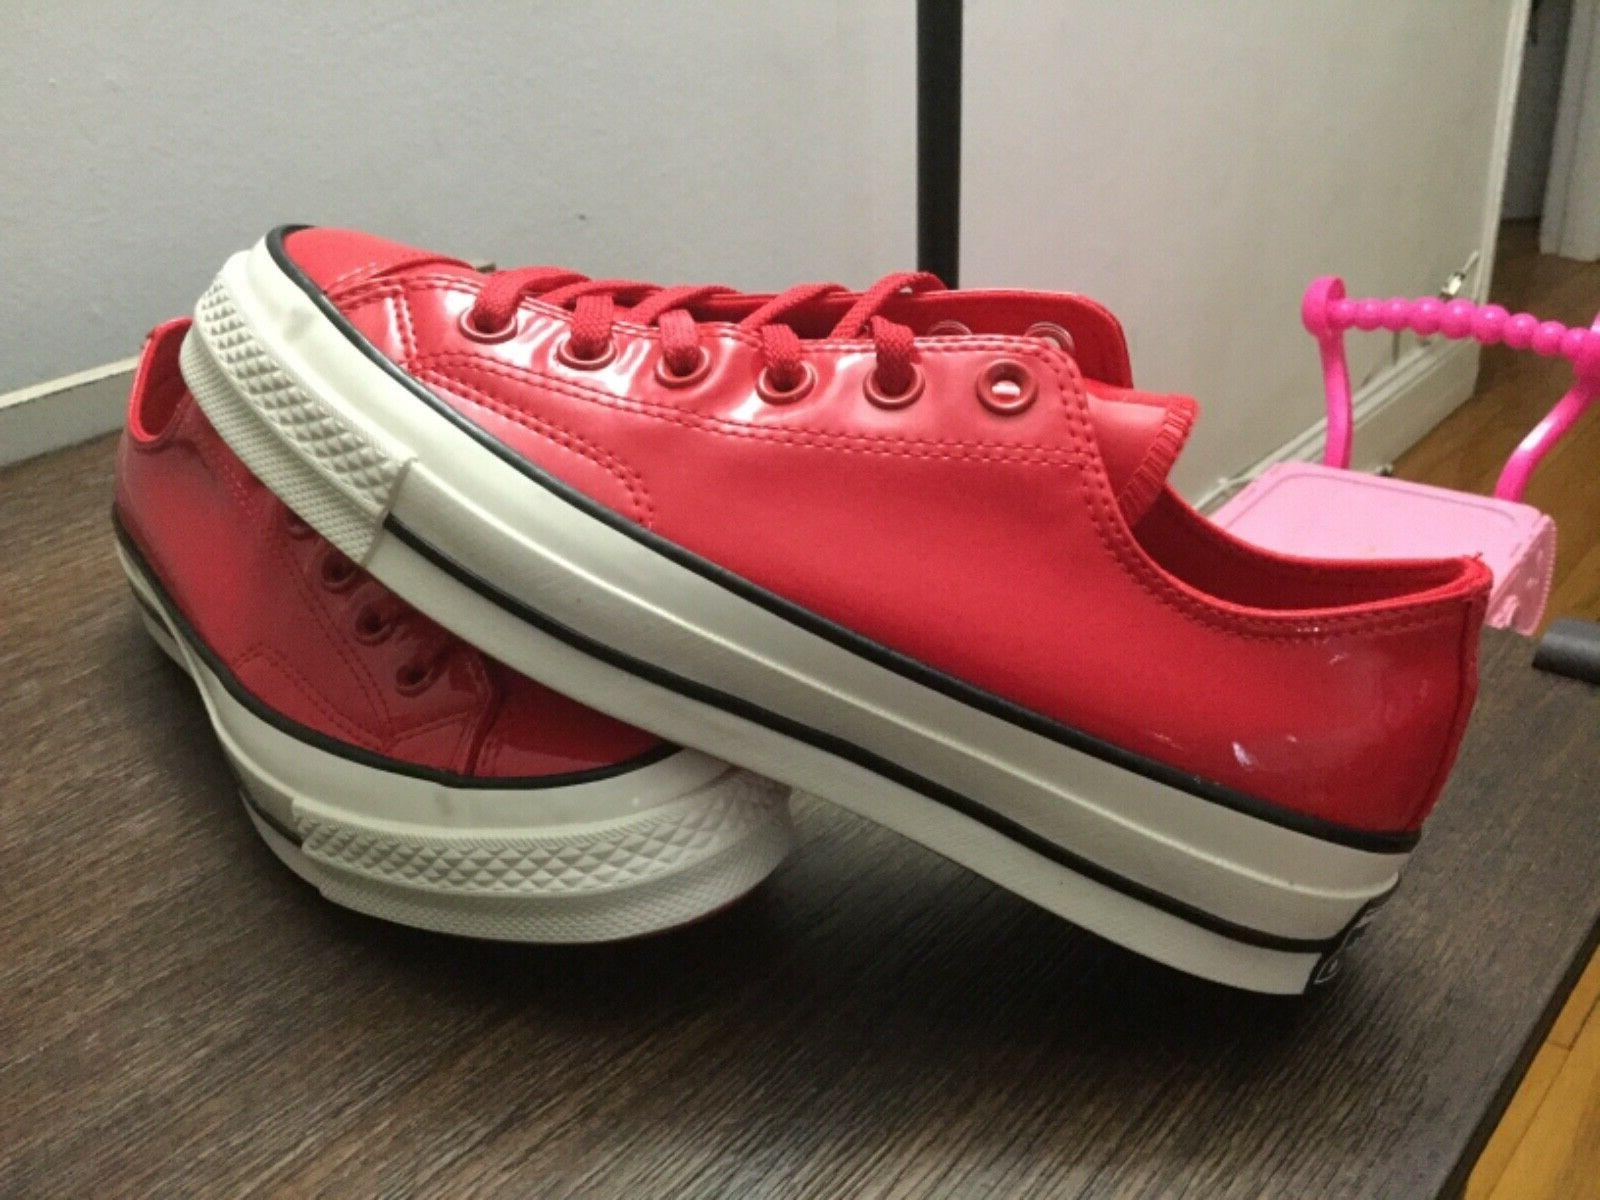 Converse Chuck Taylor All Star Leather Cherry Red 6-8.5